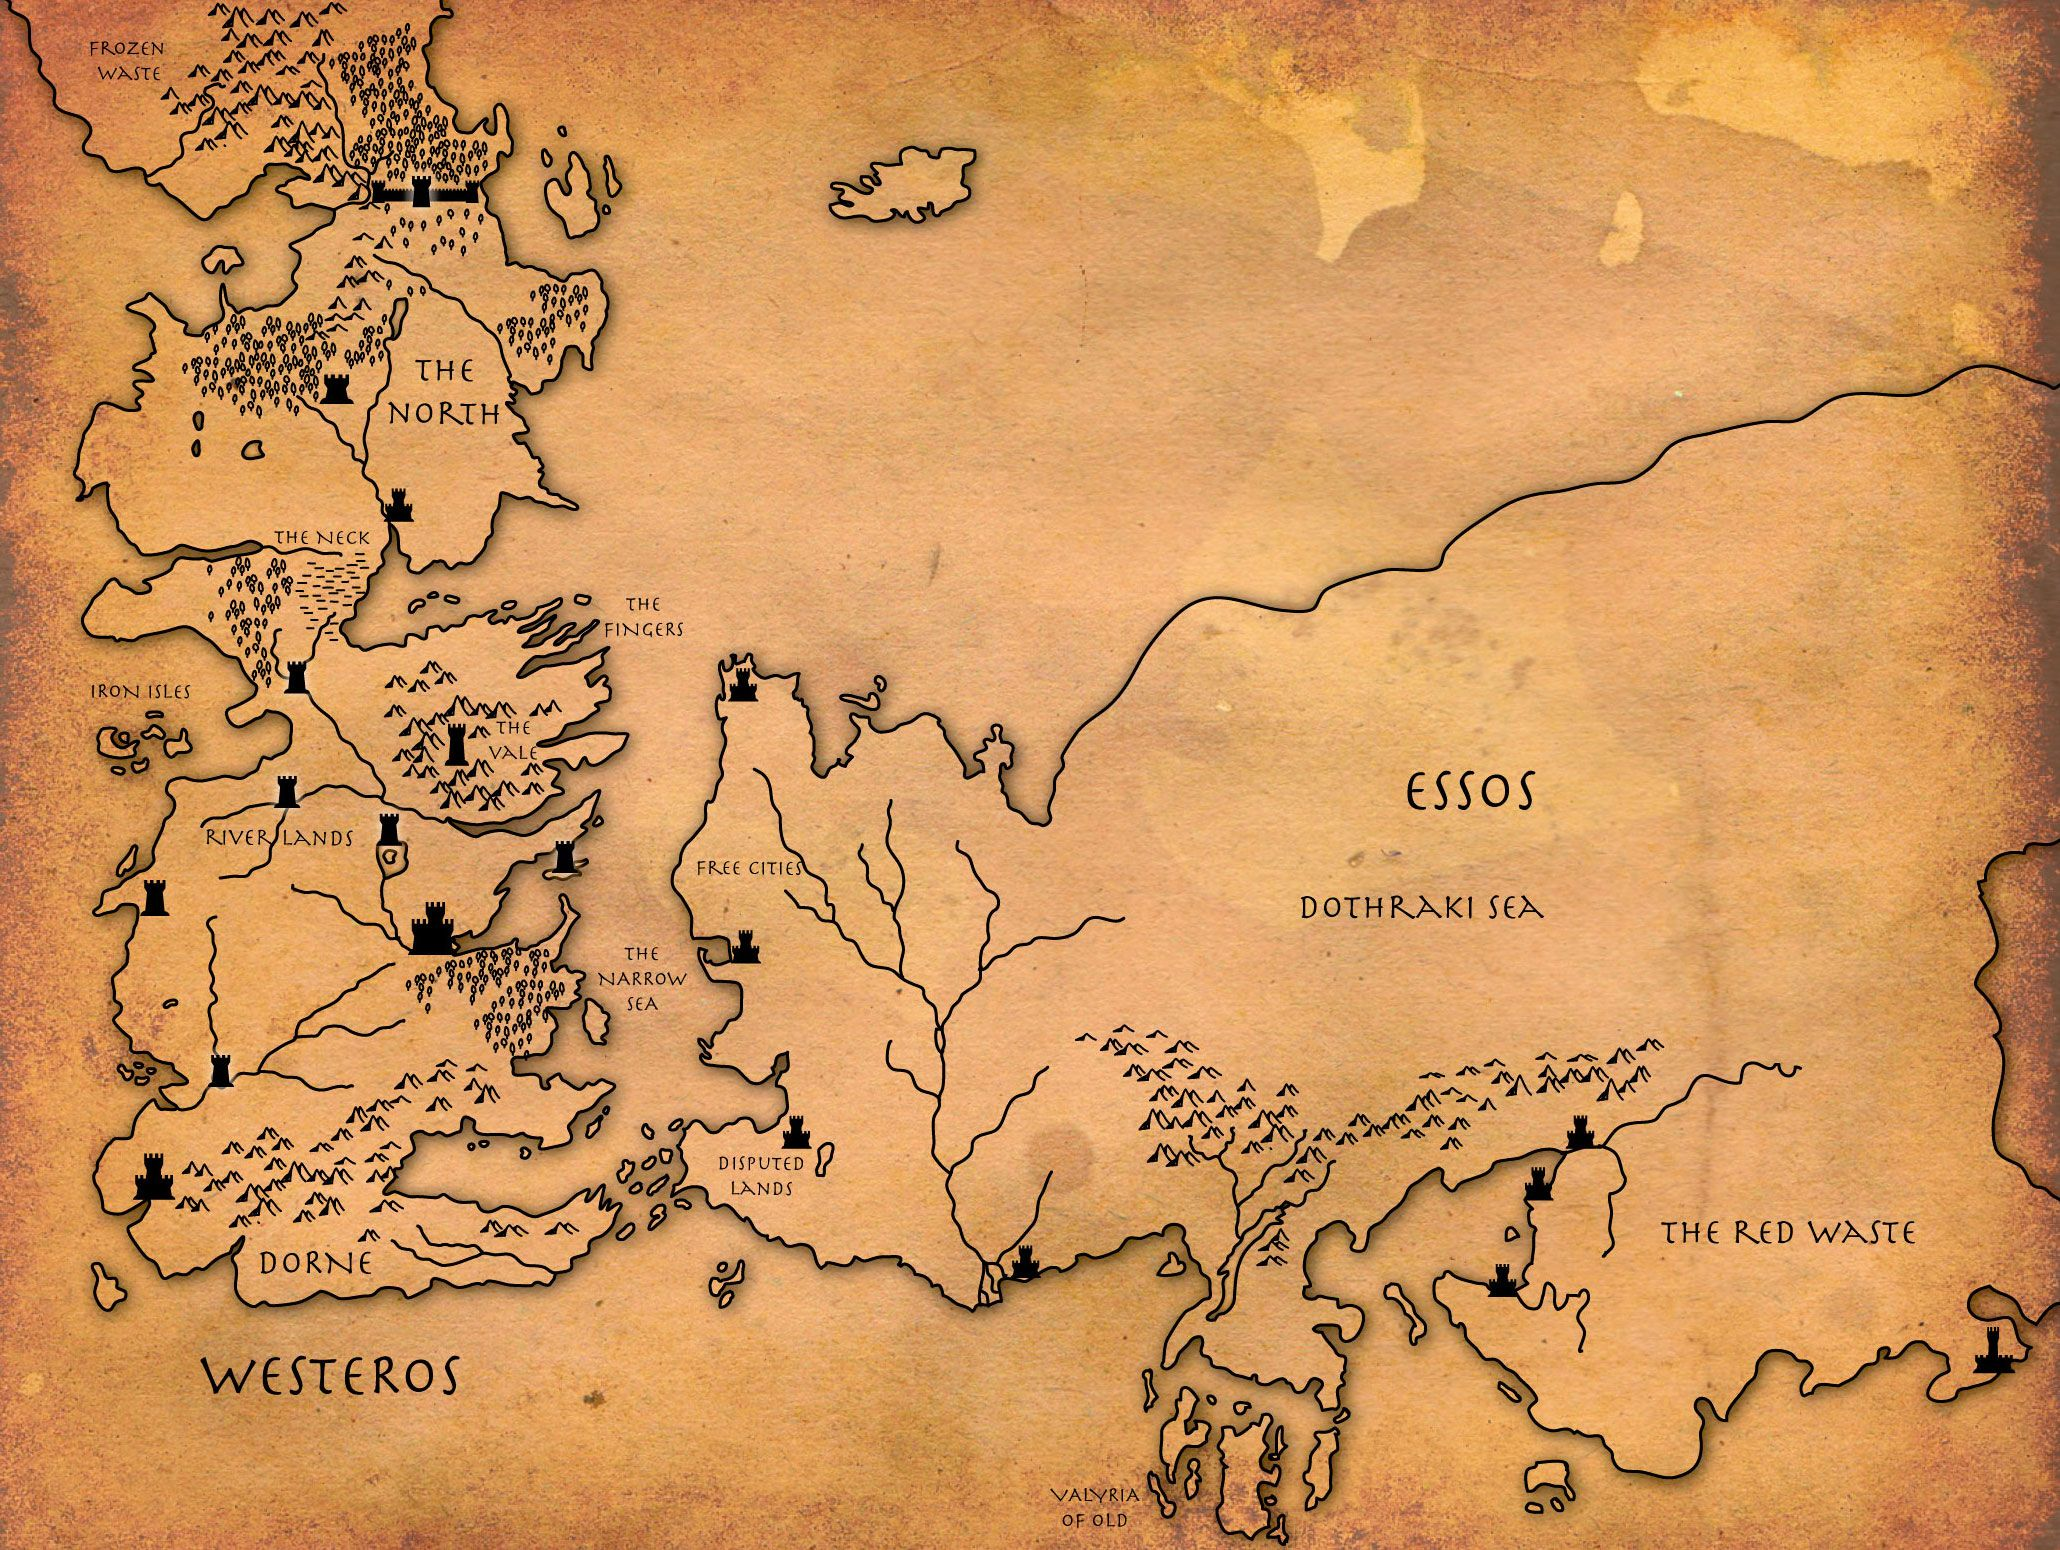 Game of Thrones map. Fairly large photo. Print it out and ... Game Of Thrones Map Large on game of thrones maps hbo, united states map large, game of thrones castle names, game of thrones westeros, game of thrones chart, game of thrones dragon symbol, game of thrones narrow sea, earthsea map large, game of thrones house wallpapers, game of thrones house symbols, game of thrones clan names, game of thrones you rock,